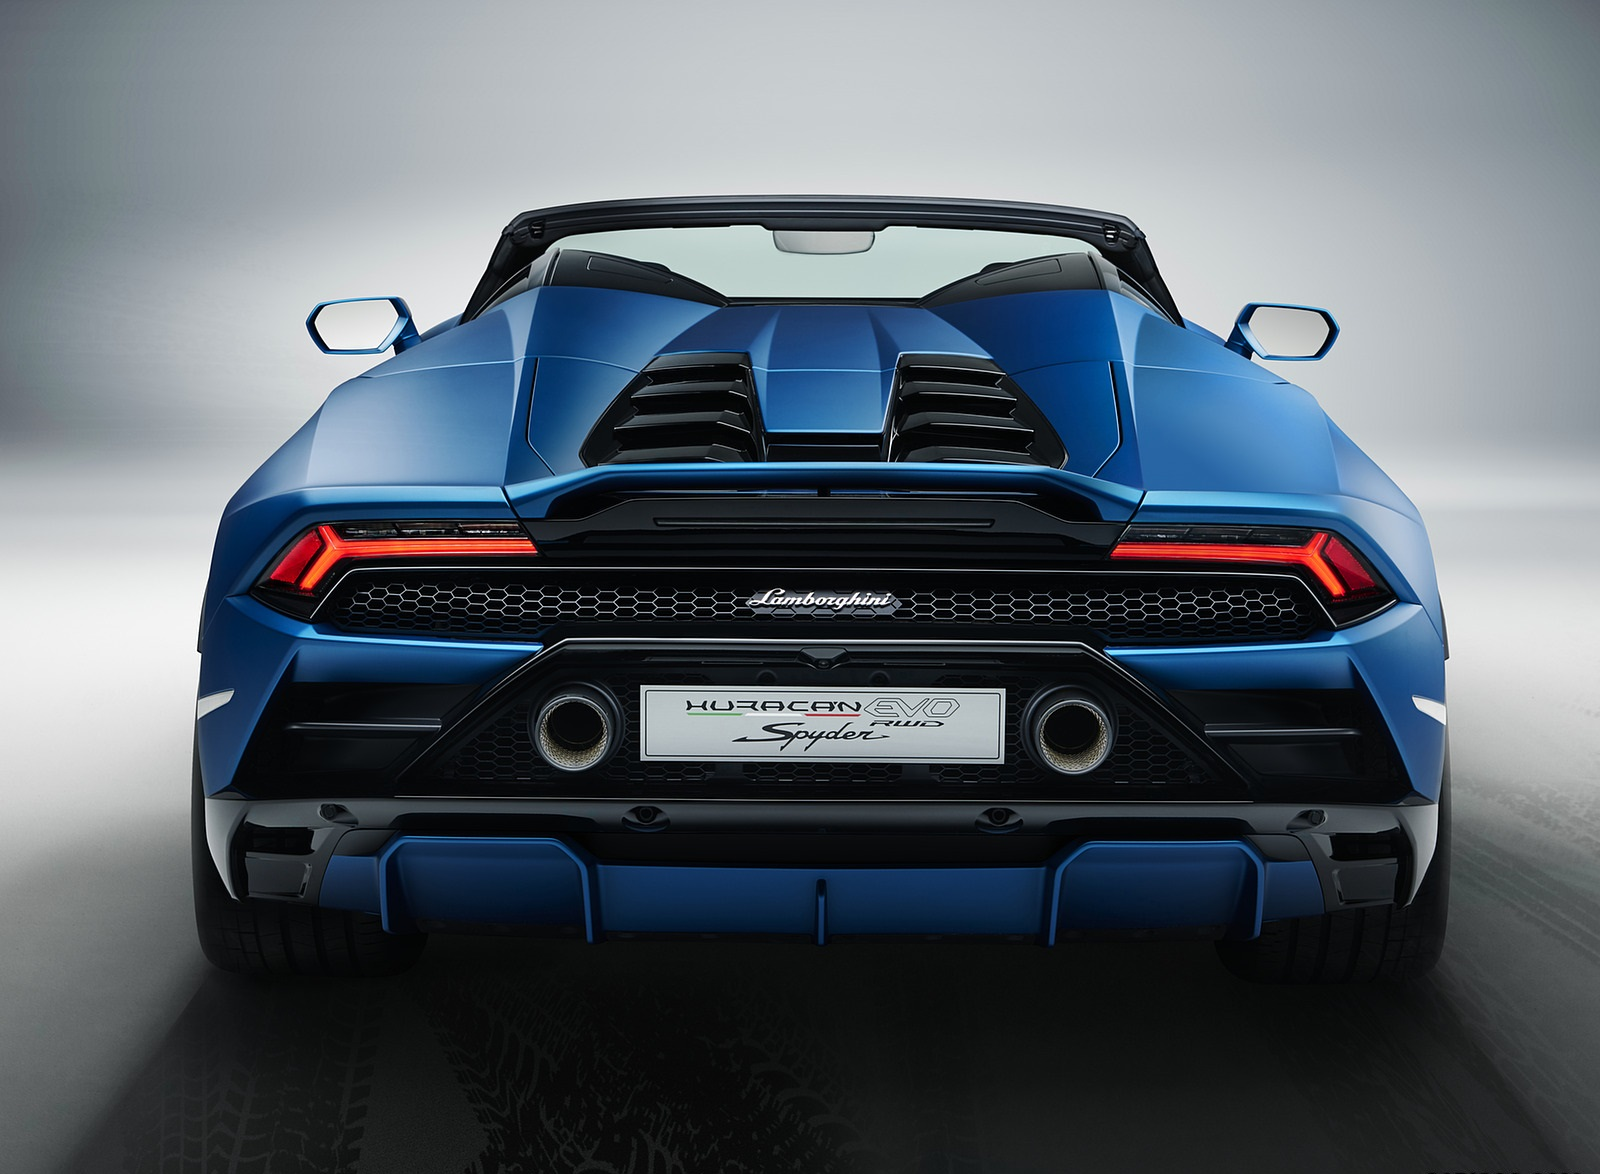 2021 Lamborghini Huracán EVO RWD Spyder Rear Wallpapers (8)